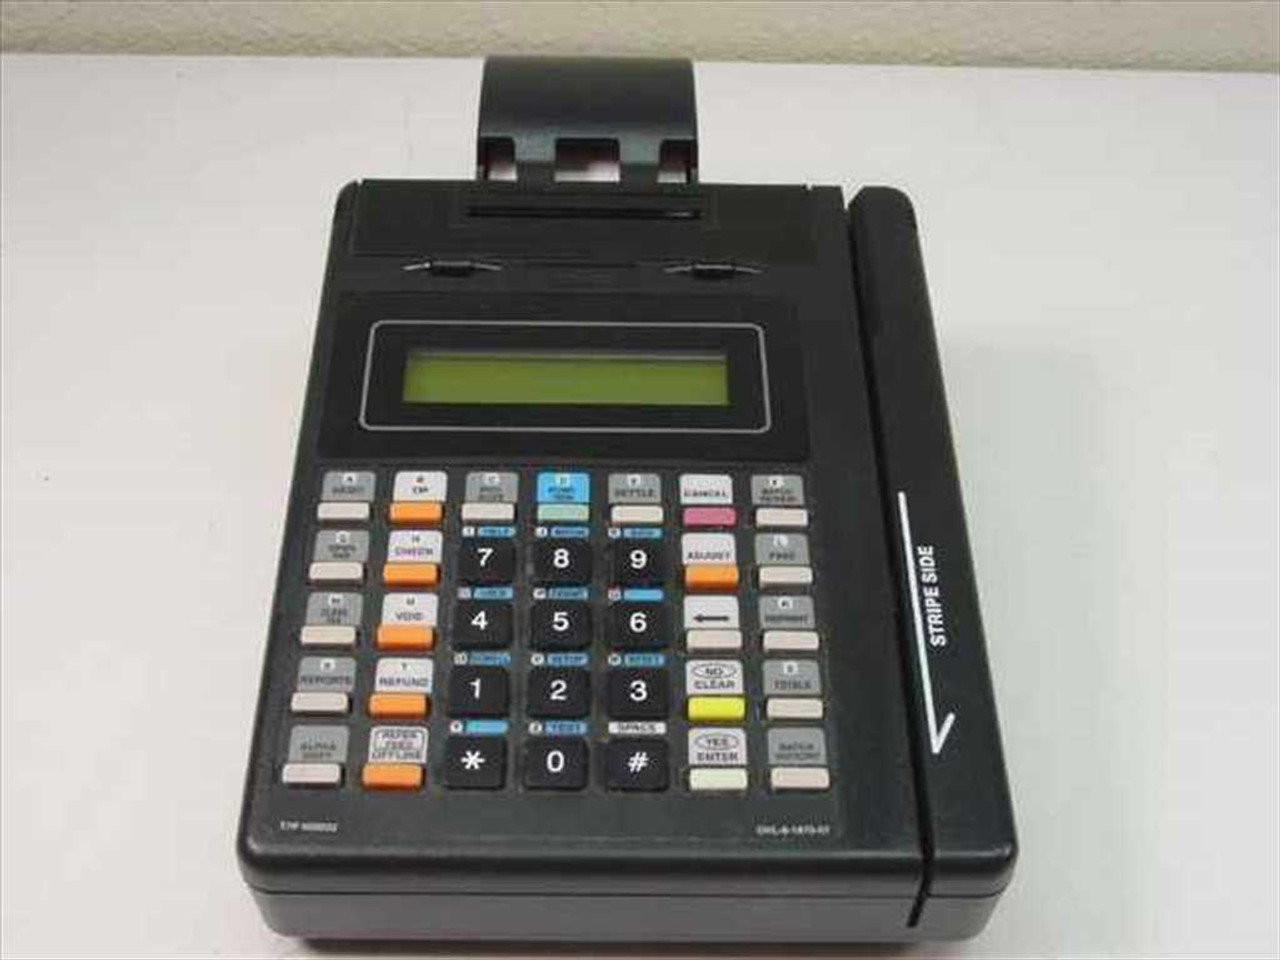 Hypercom Credit Card Terminal with Printer - 010004-192 G (T7P-T) ...